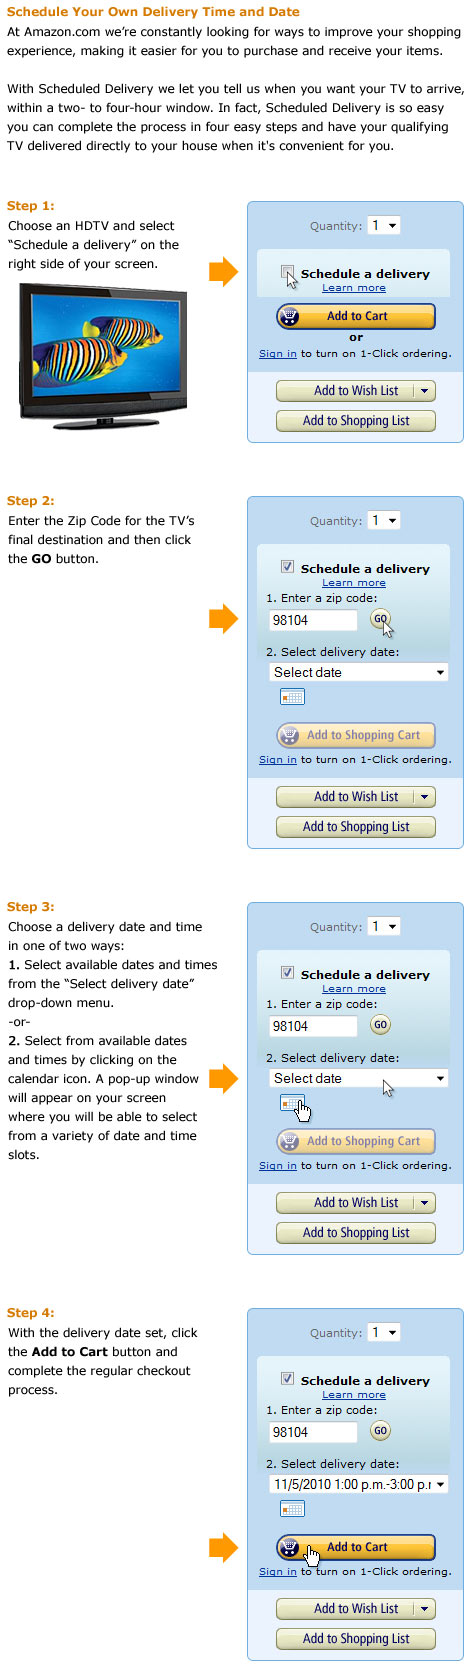 Pick Your Own Delivery Time